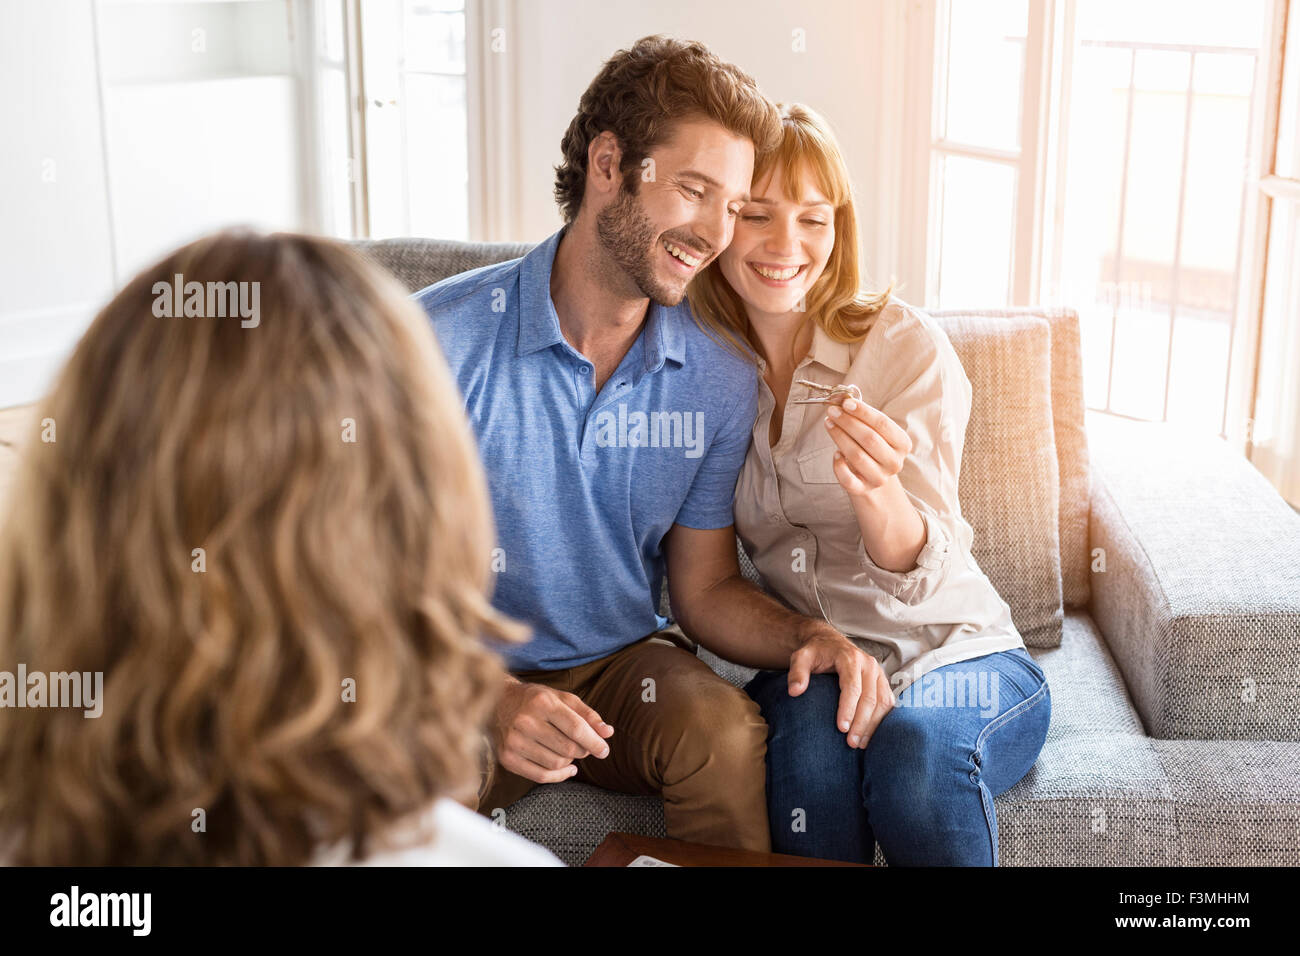 Saleswoman giving apartment keys to new owners. Happiness, enjoyment - Stock Image